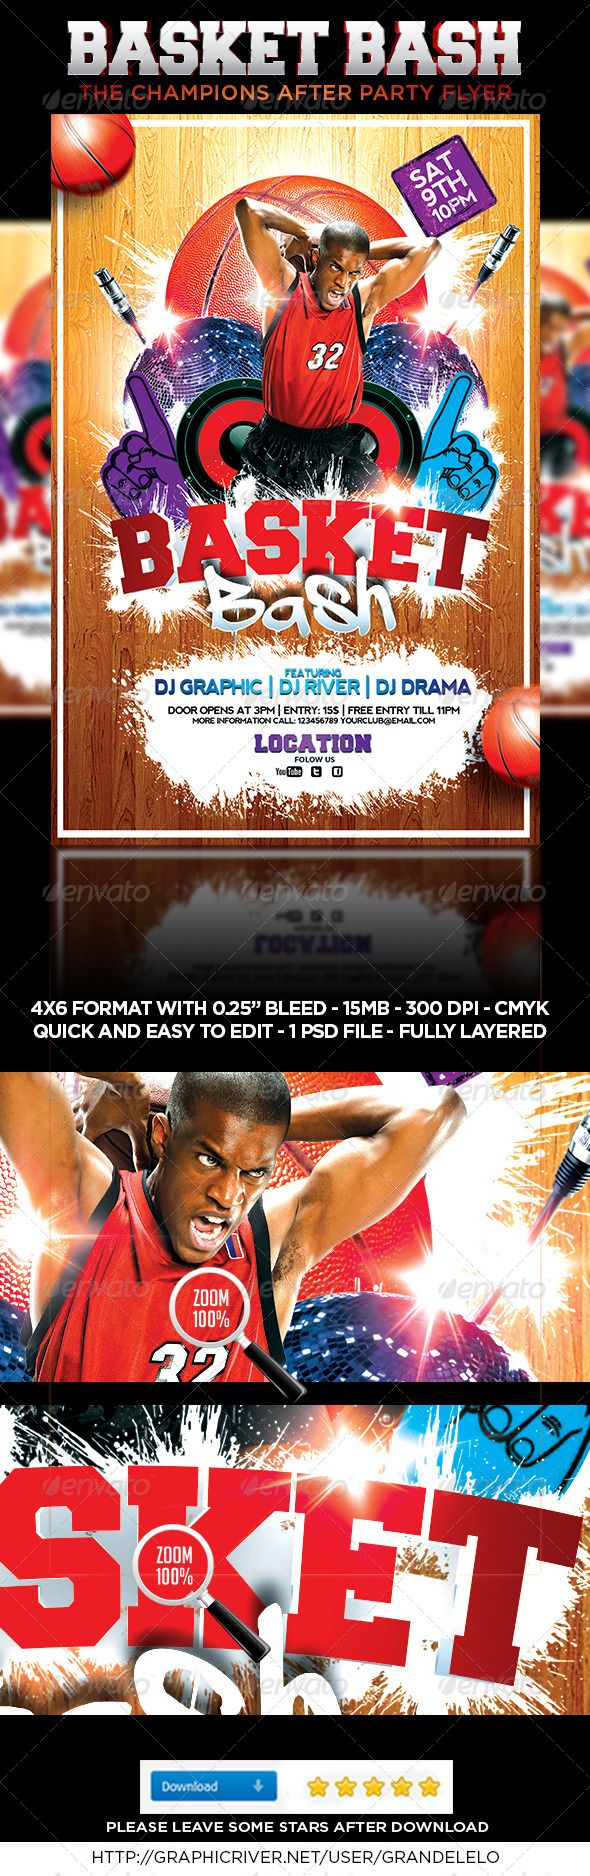 Basketball Bash Flyer  #GraphicRiver         Enjoy grate Basketball, NBA, March Madness, or any Event related to Basket Ball, or sport, this is a Flyer / Poster for your Nightclub or outdoor Party, very colorful, very happy, and very alive and, you can change everything you want, color, style, pictures, typo is no problem. It is well-assorted in folders and layers.   Fonts Links:    Freshman:  .dafont /freshman.font   A Dripping Marker:  .dafont /a-dripping-marker.font  Nevis…